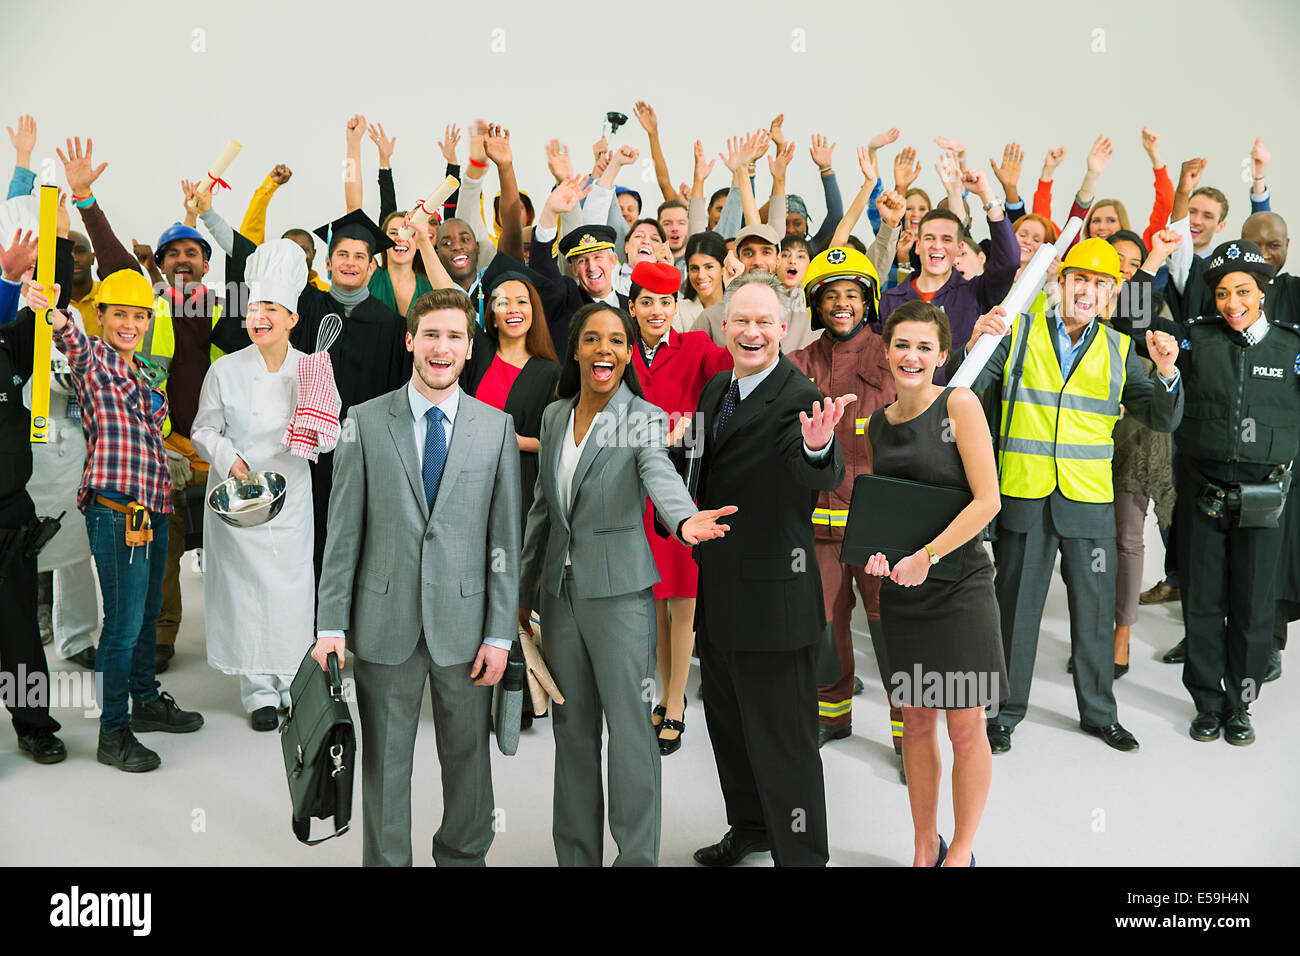 Portrait of enthusiastic workforce - Stock Image